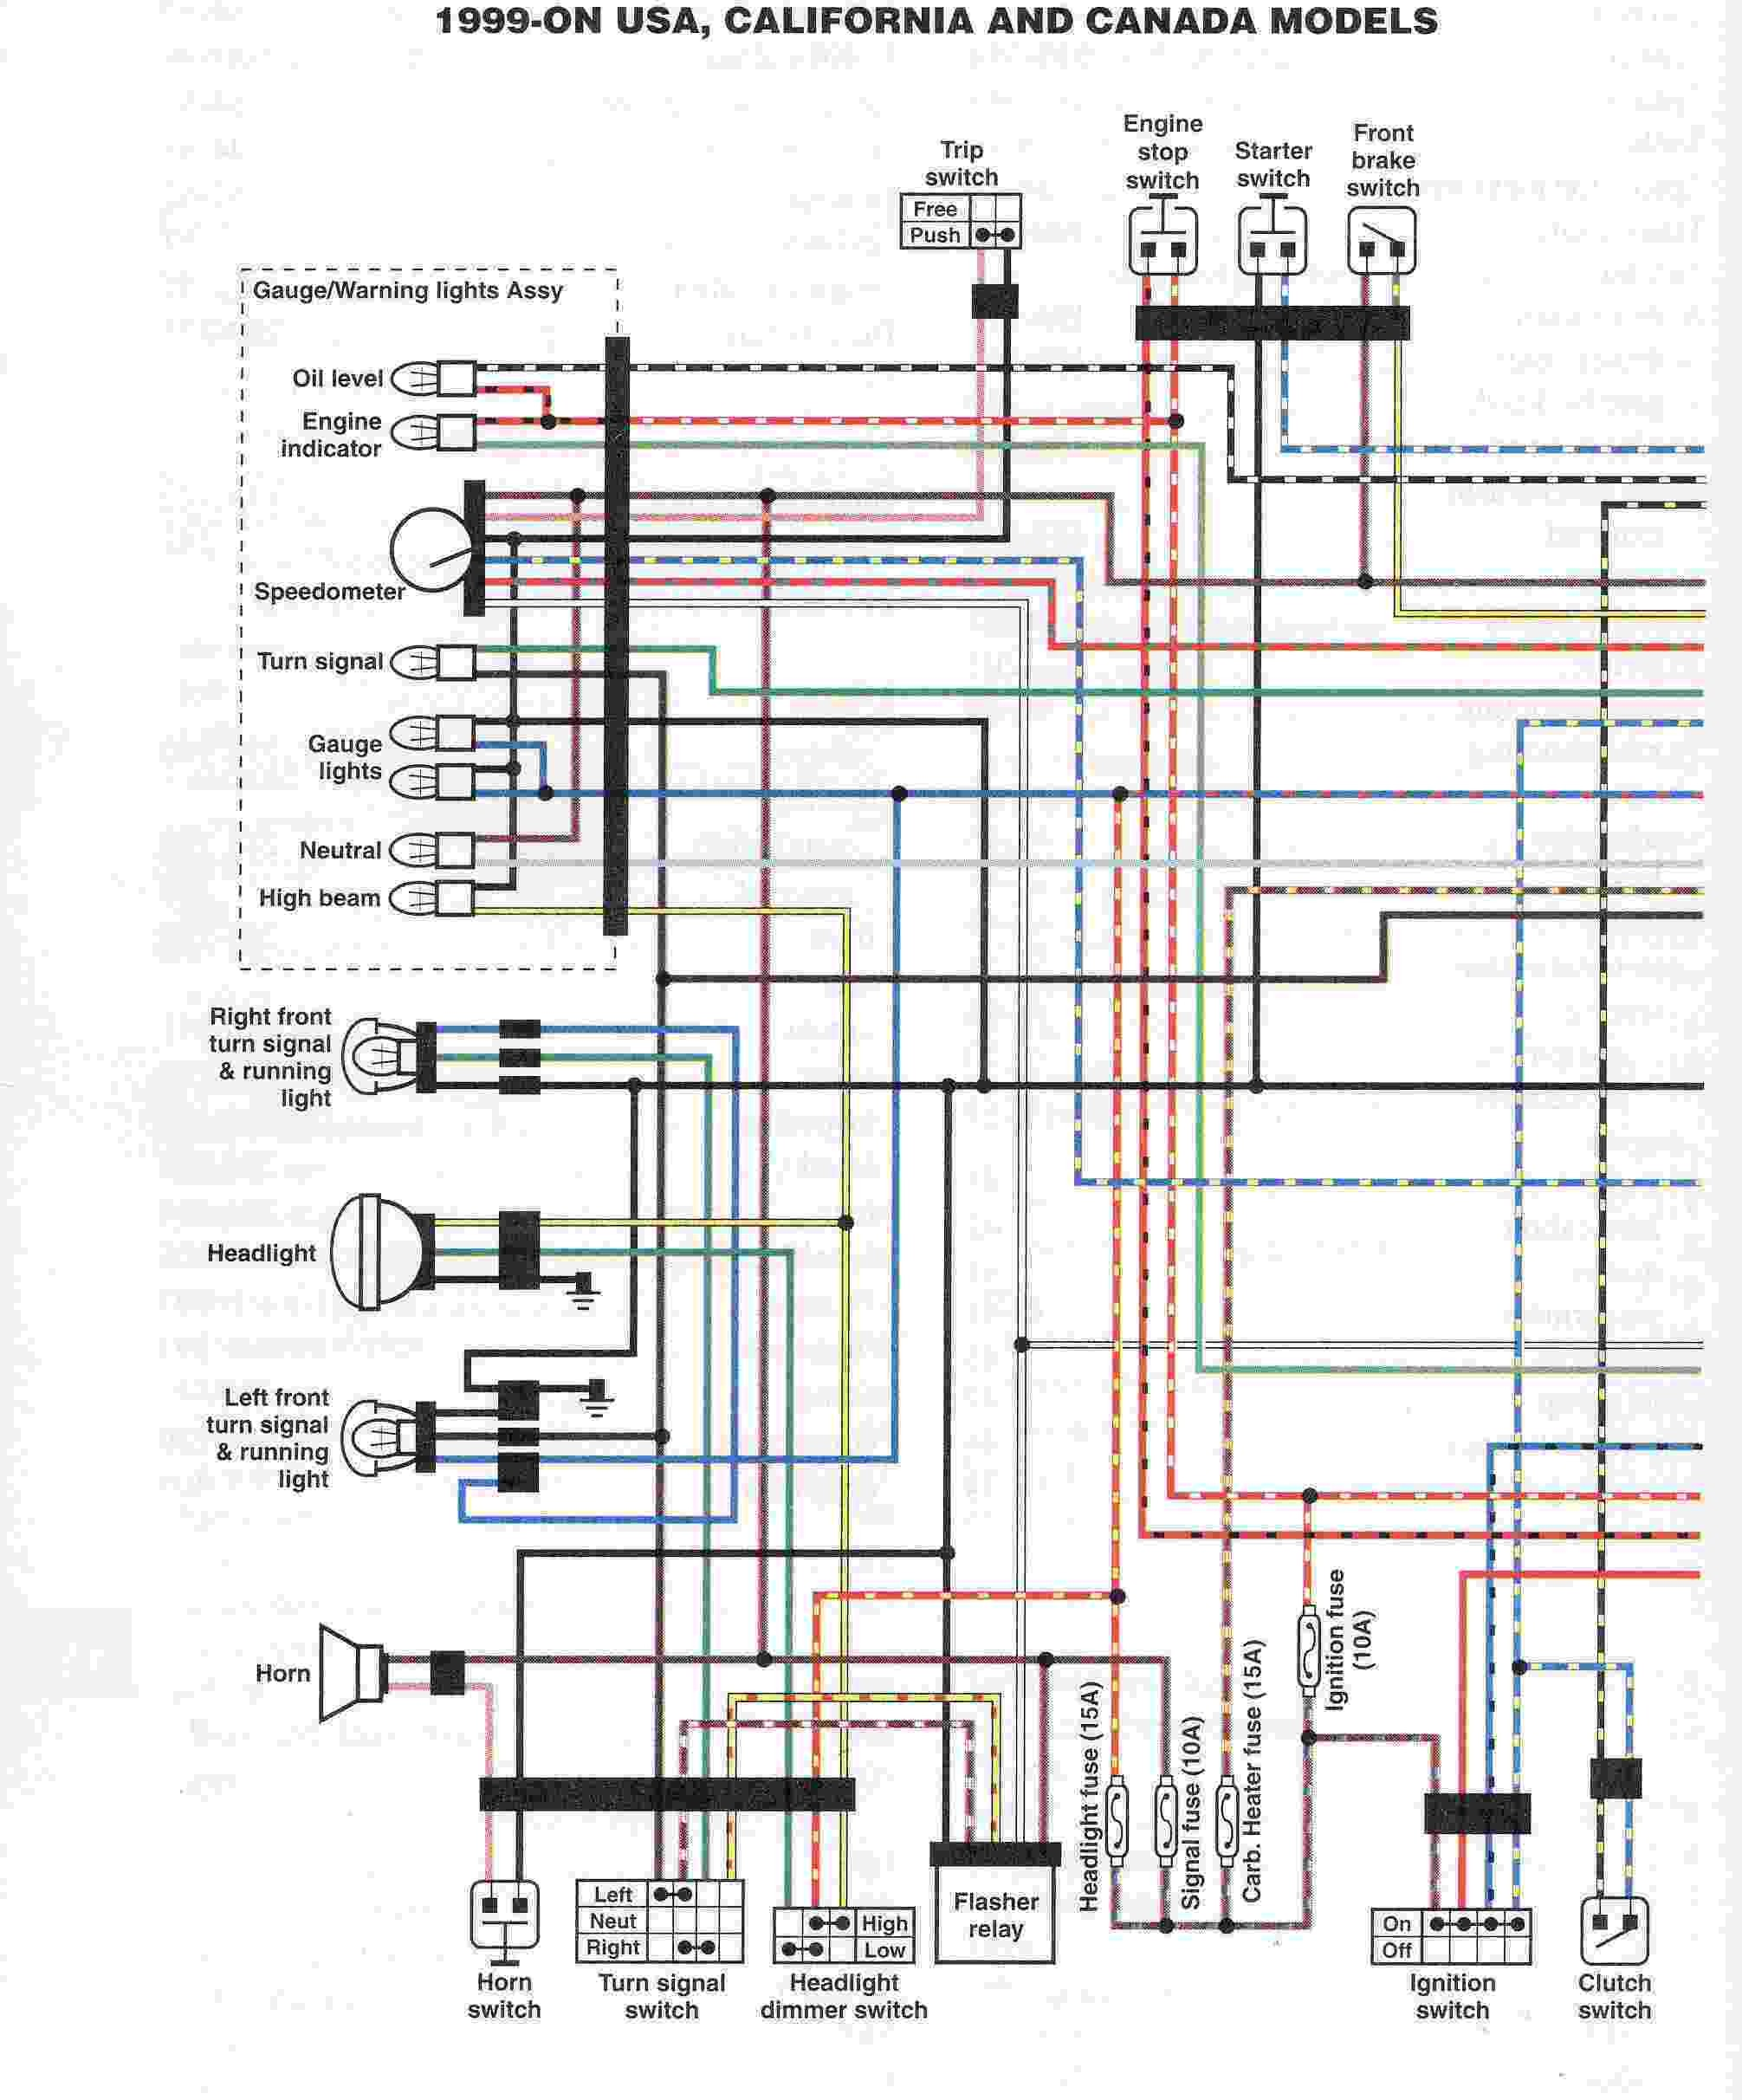 1999 yamaha 650 wiring diagram illustration of wiring diagram u2022 rh prowiringdiagram today